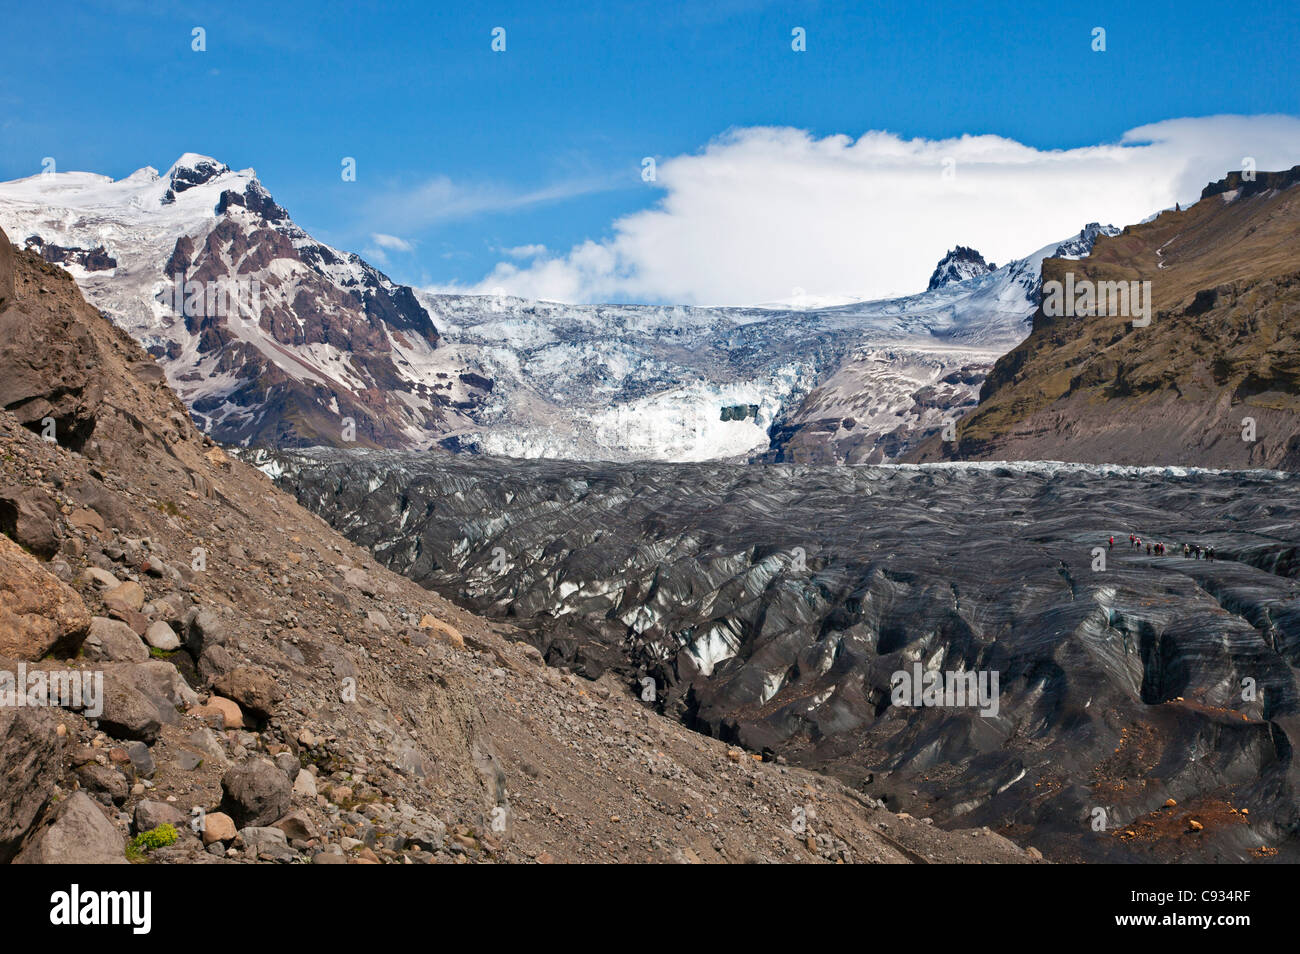 Visitors walking up Svinsfaellsjokull glacier with crampons strapped to their boots. - Stock Image